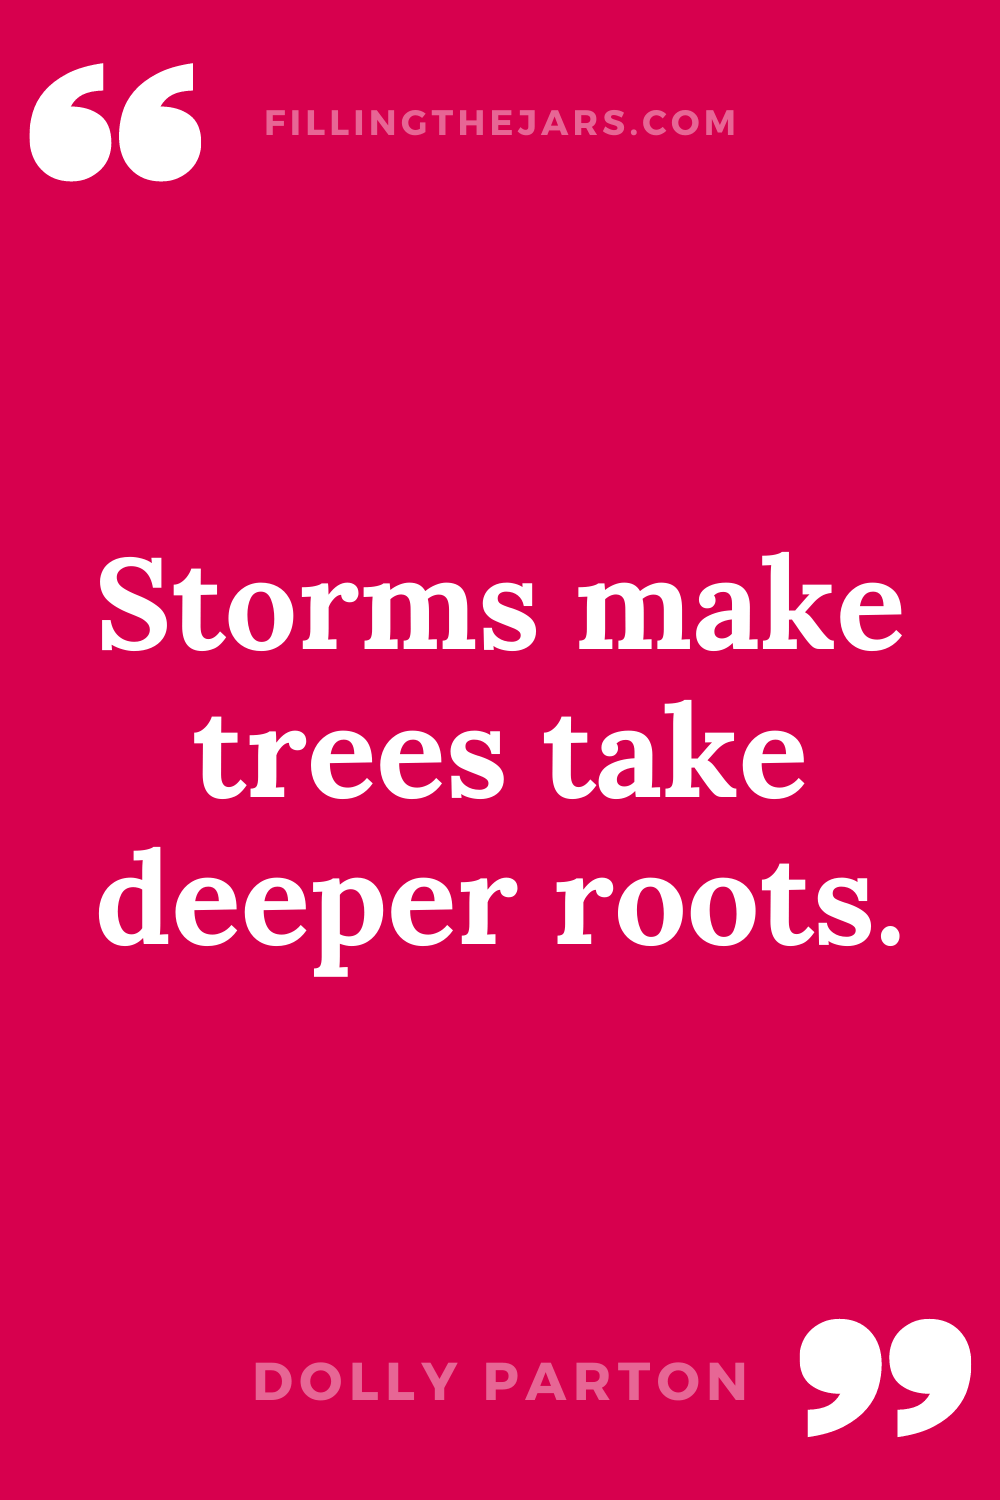 Dolly Parton storms make trees take deeper roots inspirational quote for difficult times in white text on dark pink background.